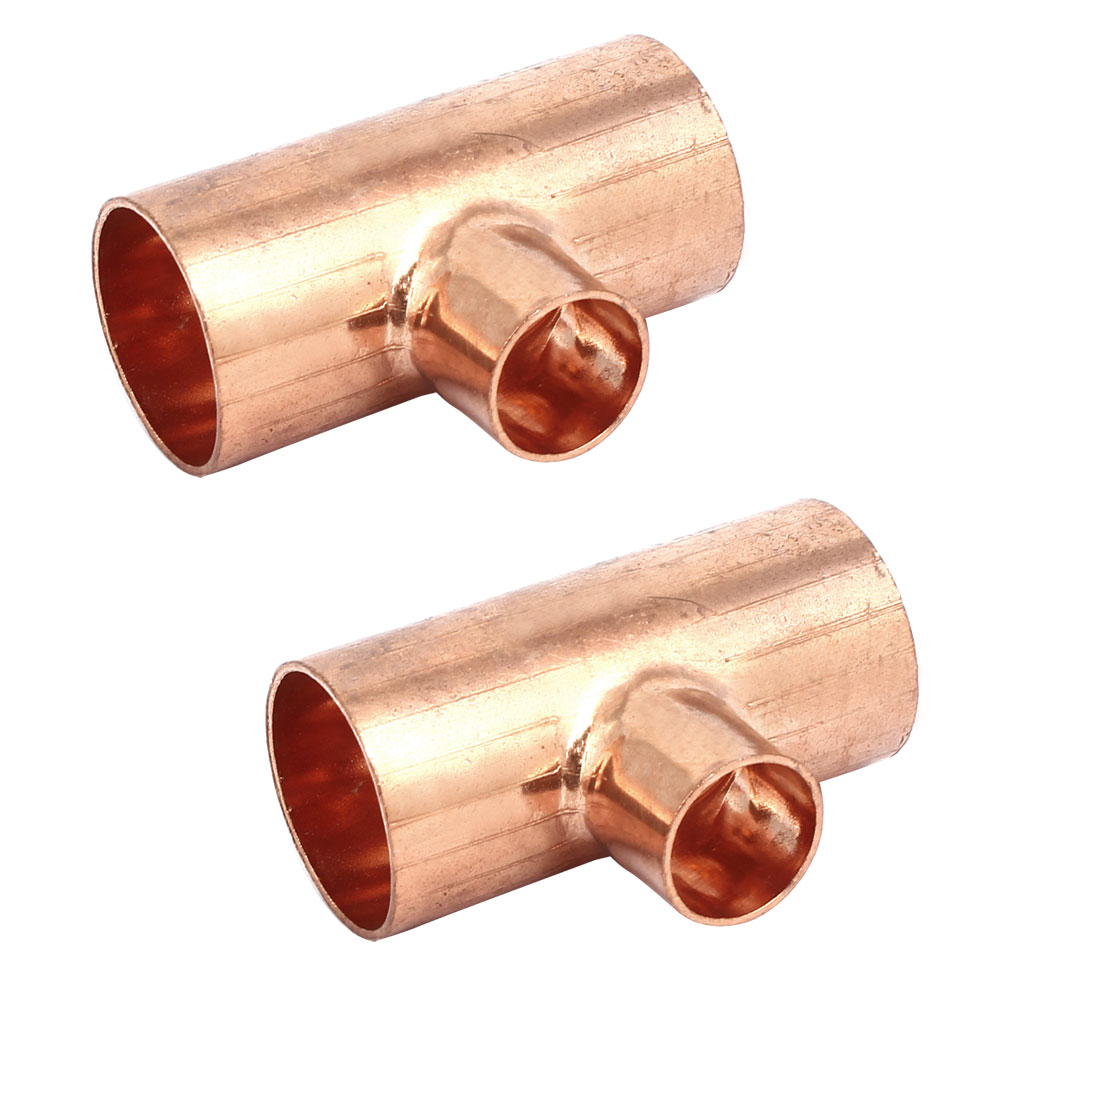 32mmx19mm Copper Tee Reducing Fitting Air Conditioner Plumbing Accessory 2pcs